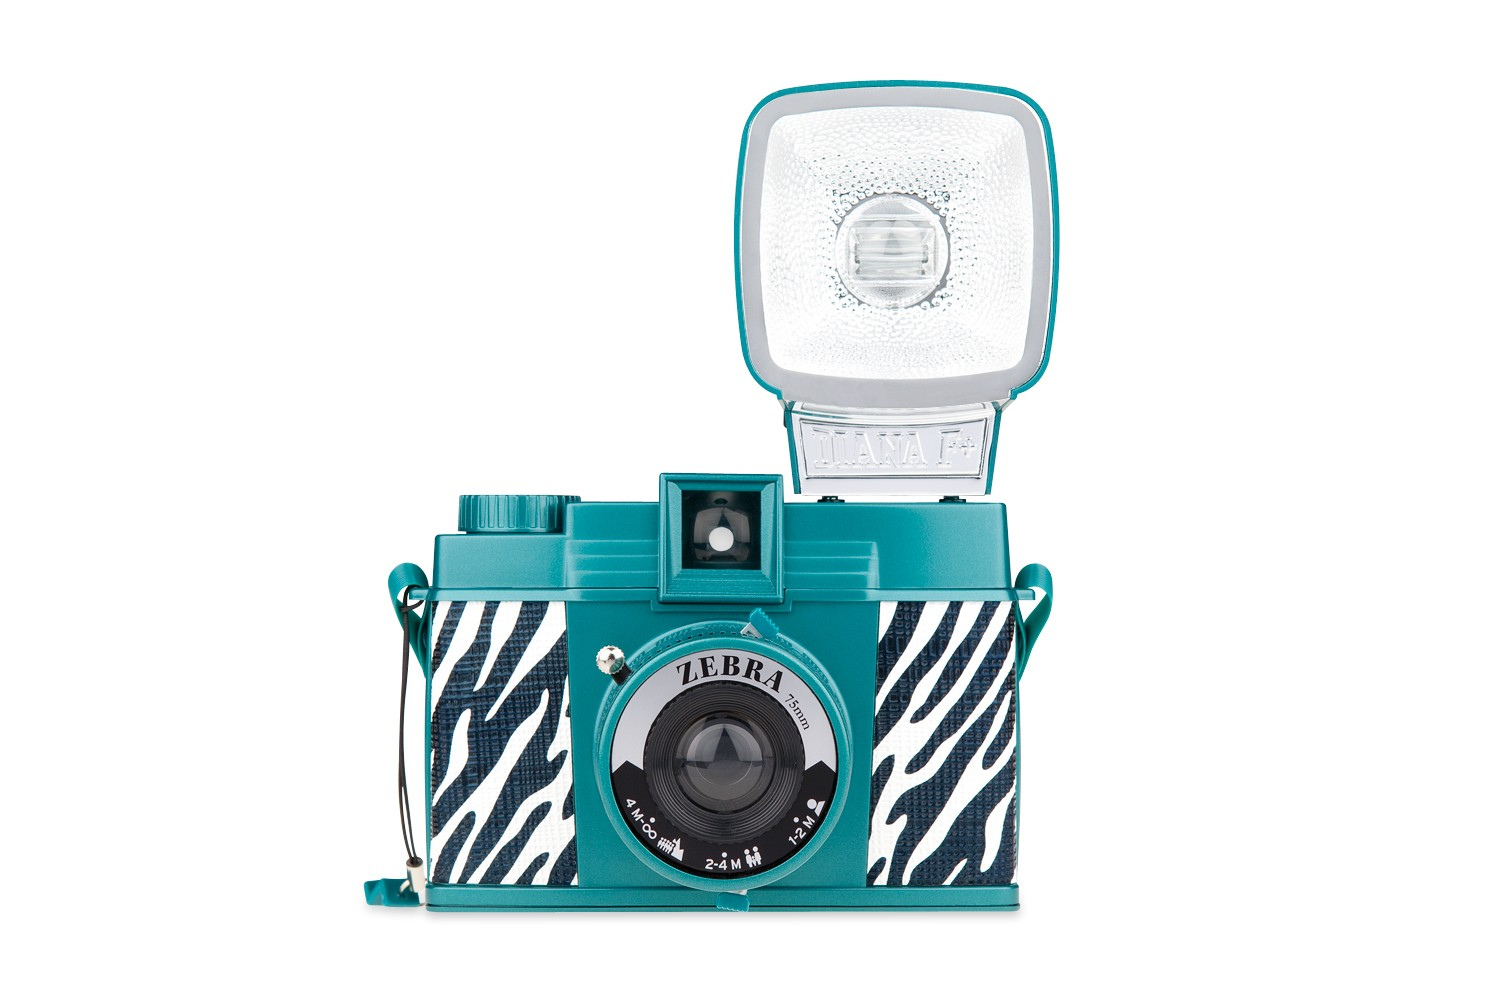 Diana F+ Camera and Flash (Zebra Edition)